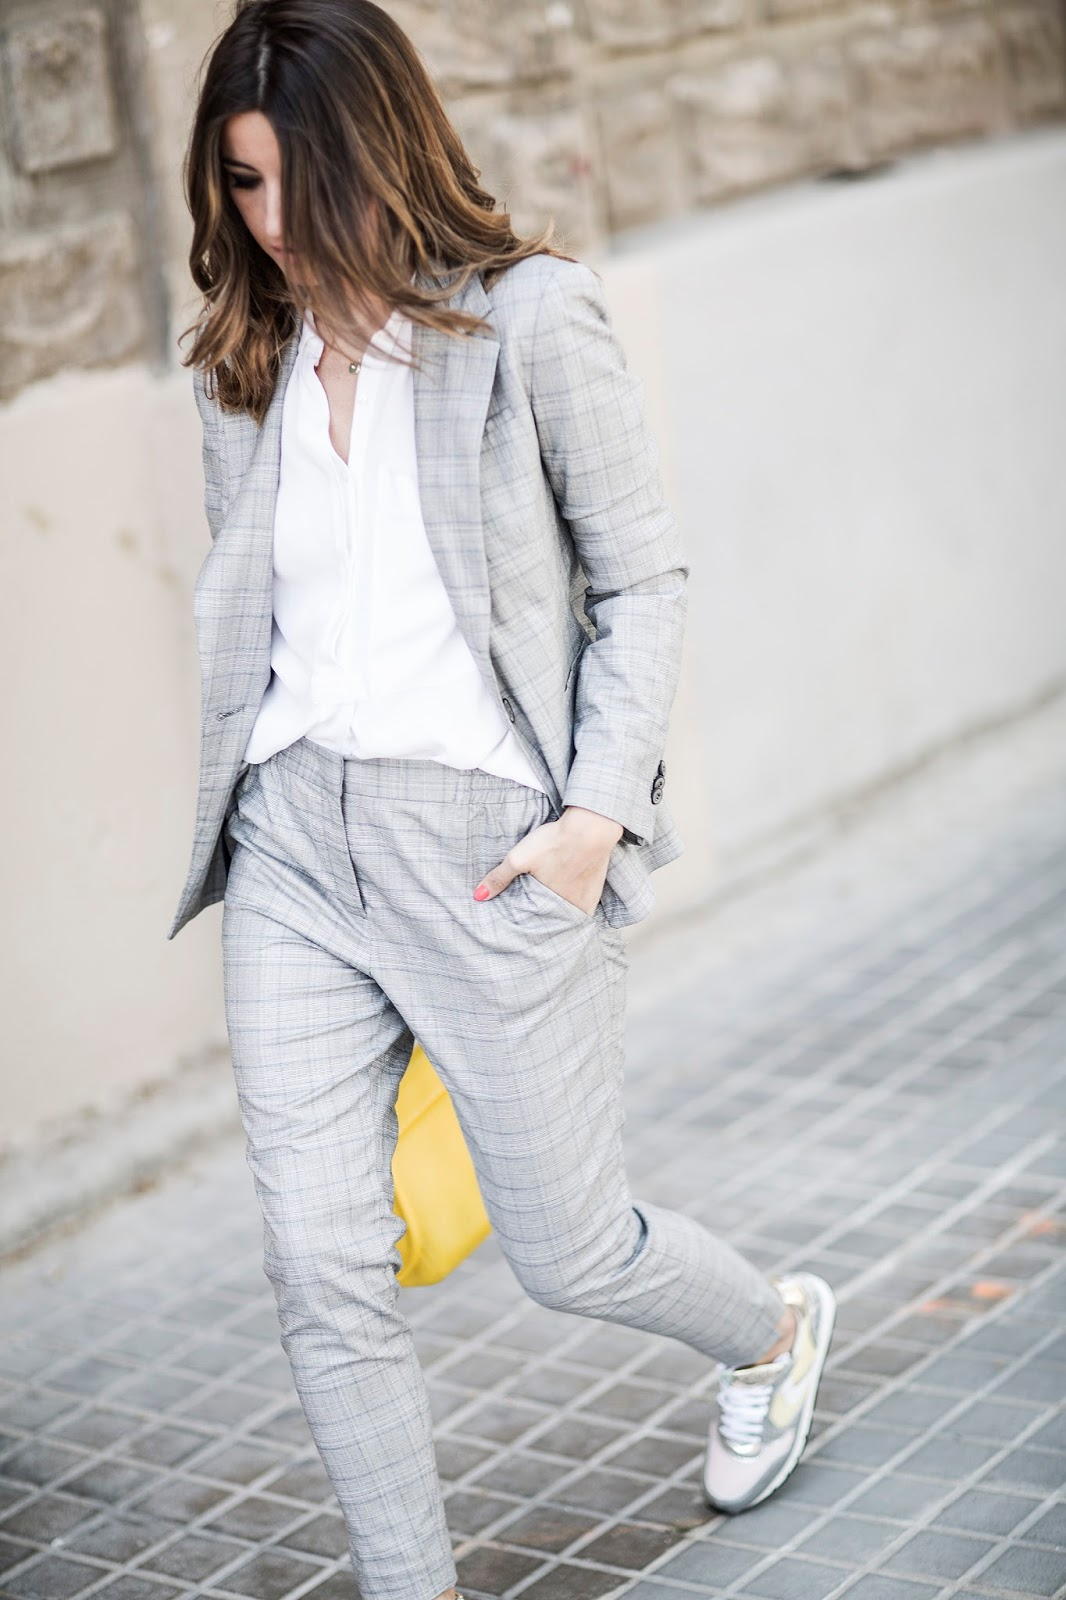 e066b8d77d7 Lisa Olsson has opted for a classic casual style here